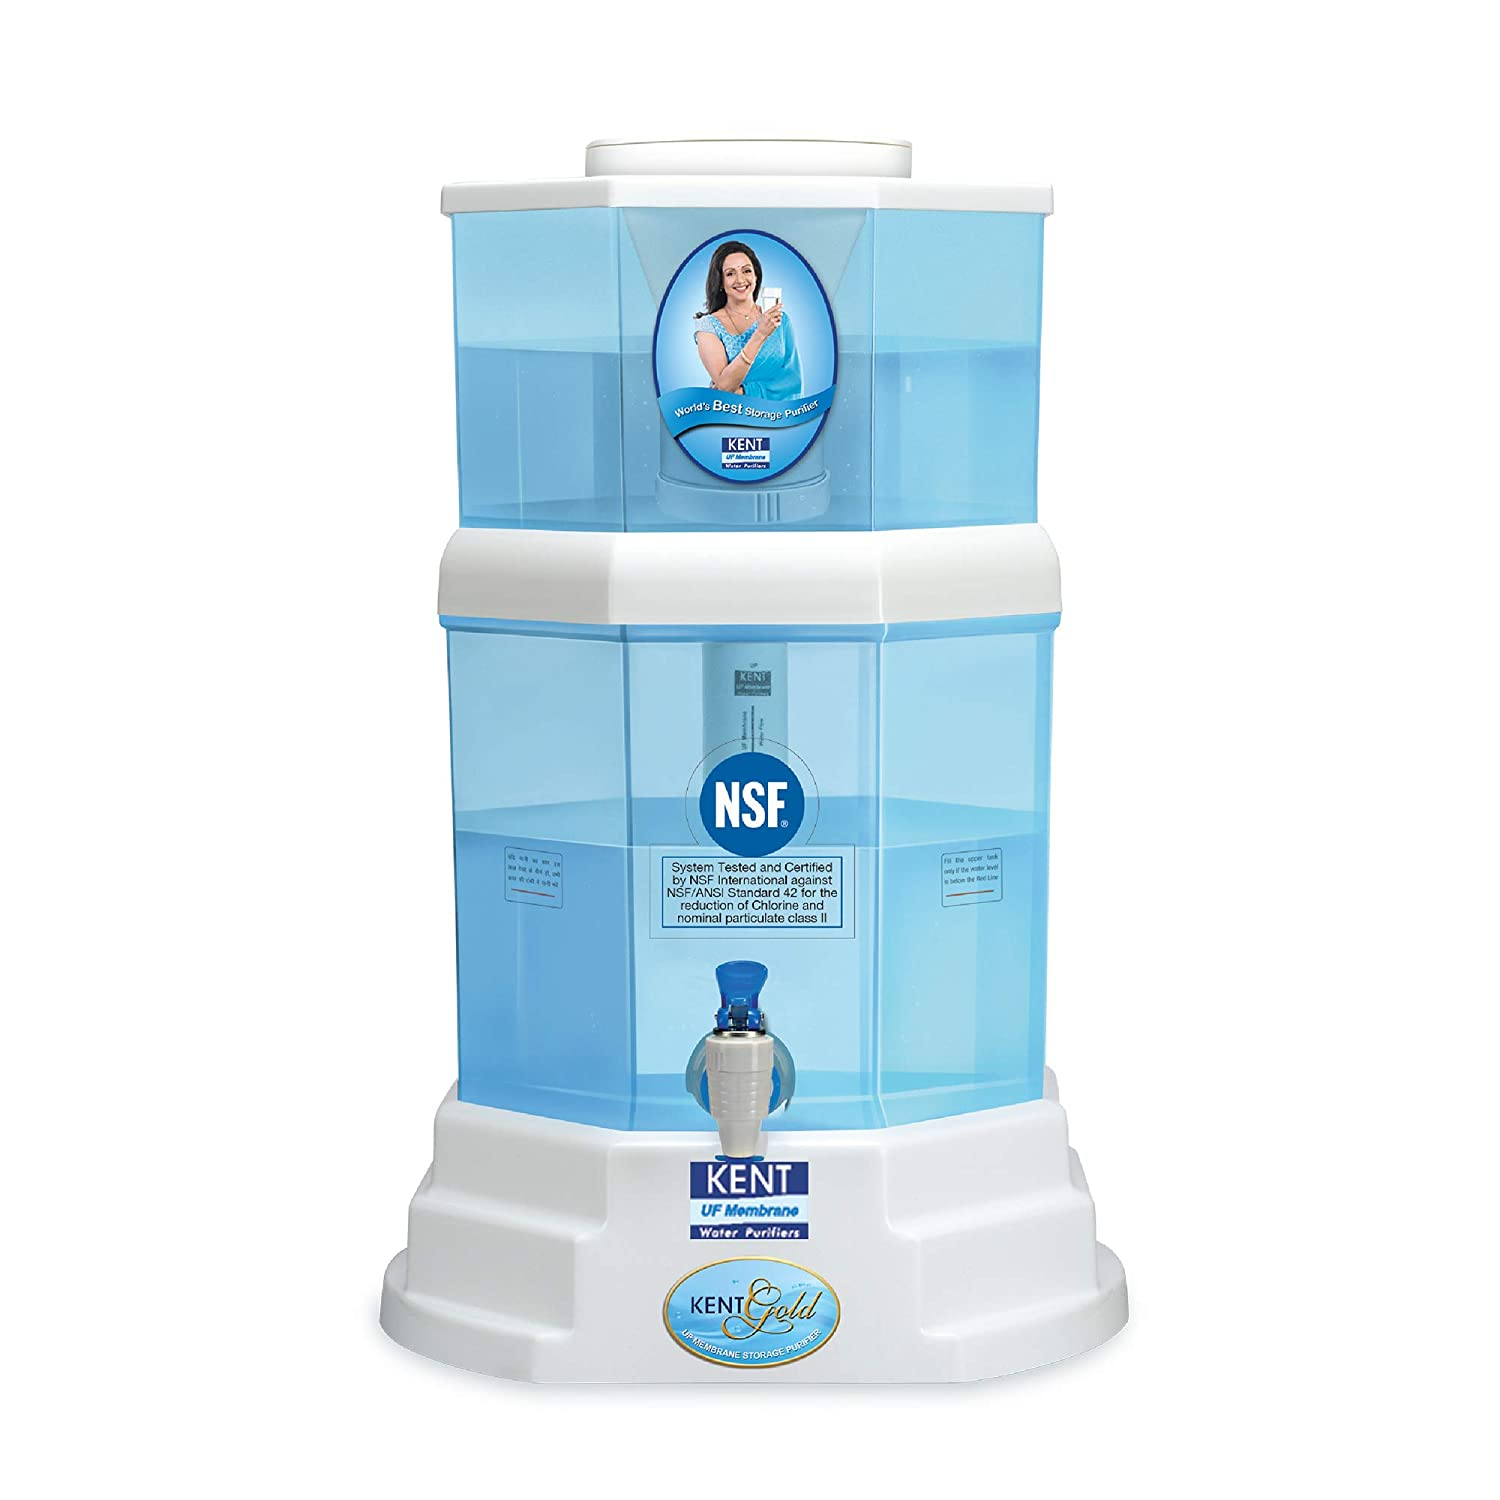 5 Best Water Purifiers below ₹5000 in India 2019 - Reviews & Buying Guide 1